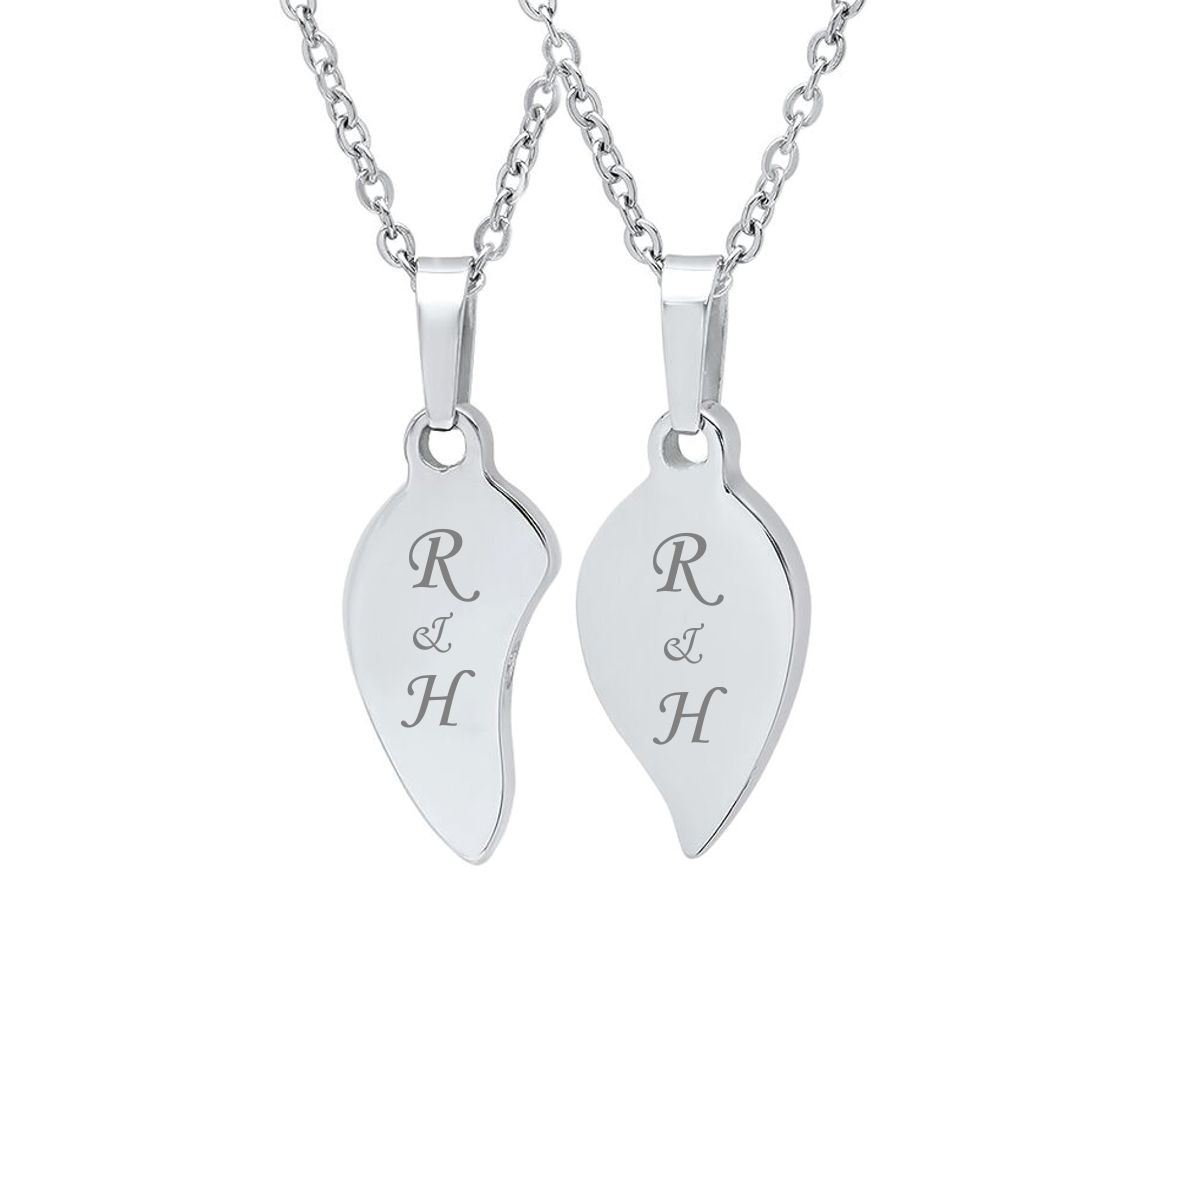 for fashion pendants jewelry letter product gifts you are wholesale women my heart necklace engraved shape bff pendant person friendship